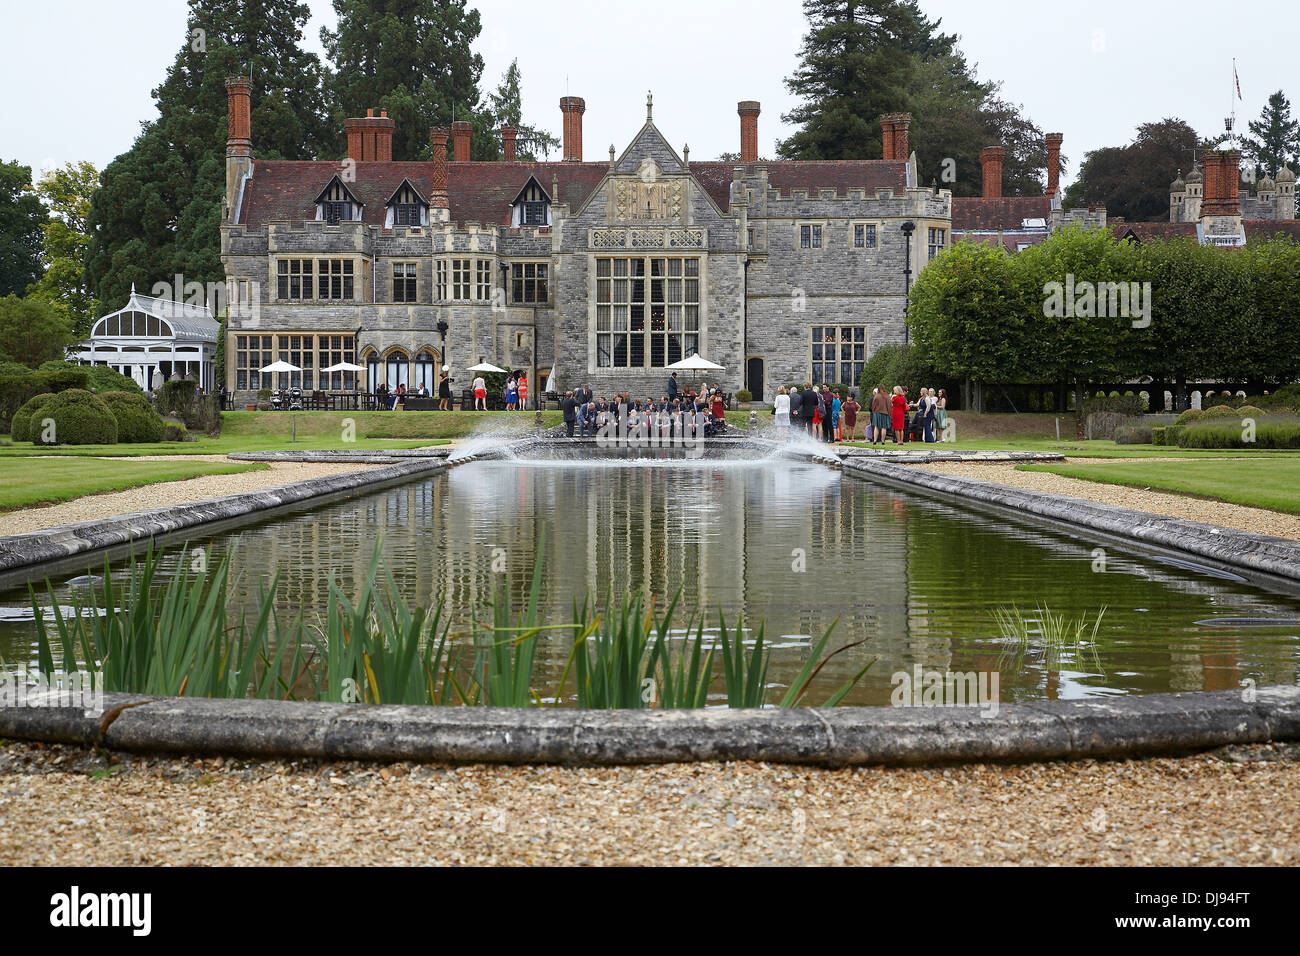 Rhinefield House An Old Historic Hotel Often Used As A Wedding Venue Situated In The New Forest Hampshire England UK